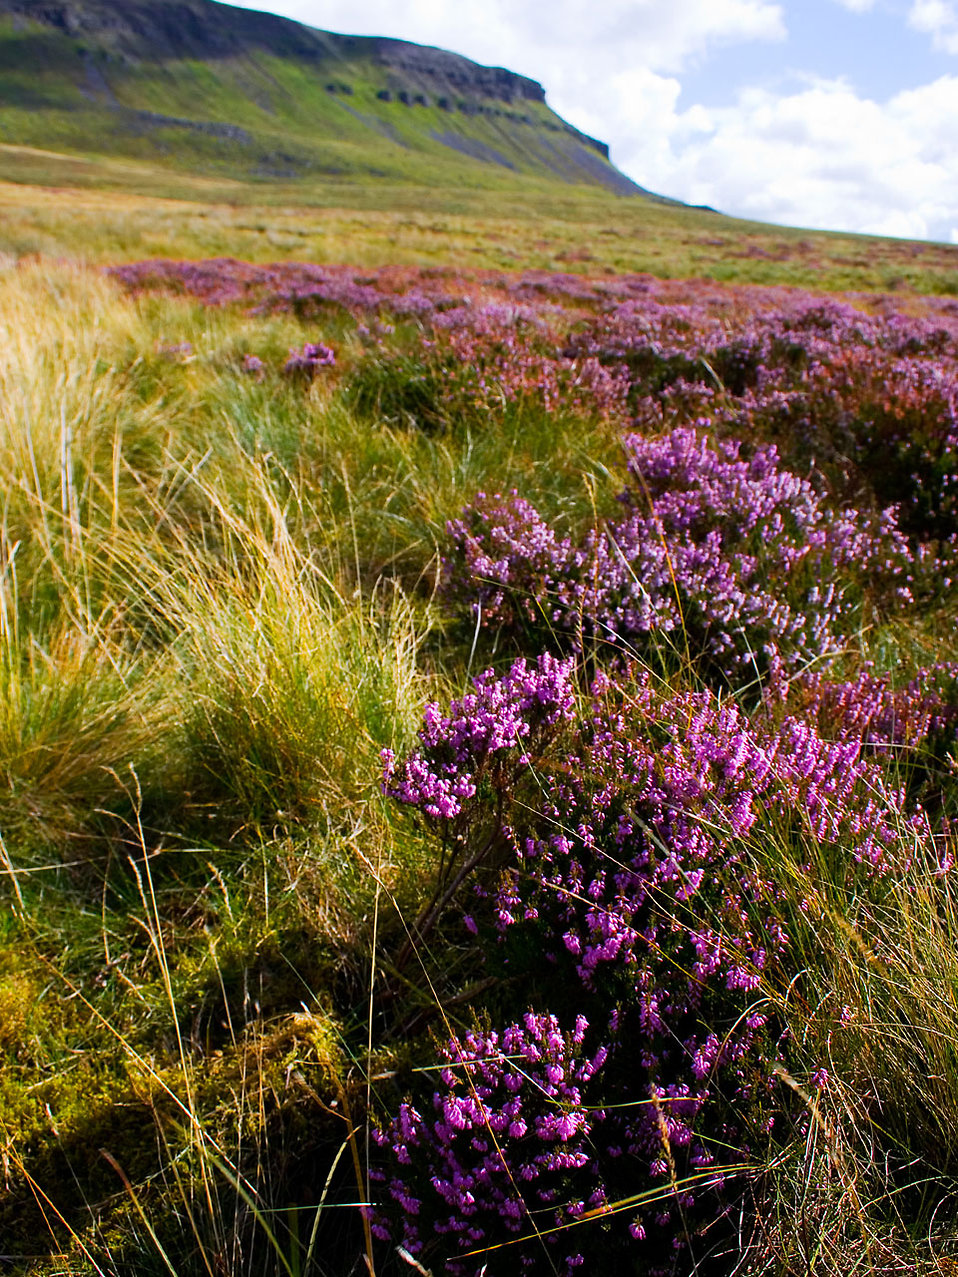 Landscape Flowers Free Stock Photo A Field With Purple